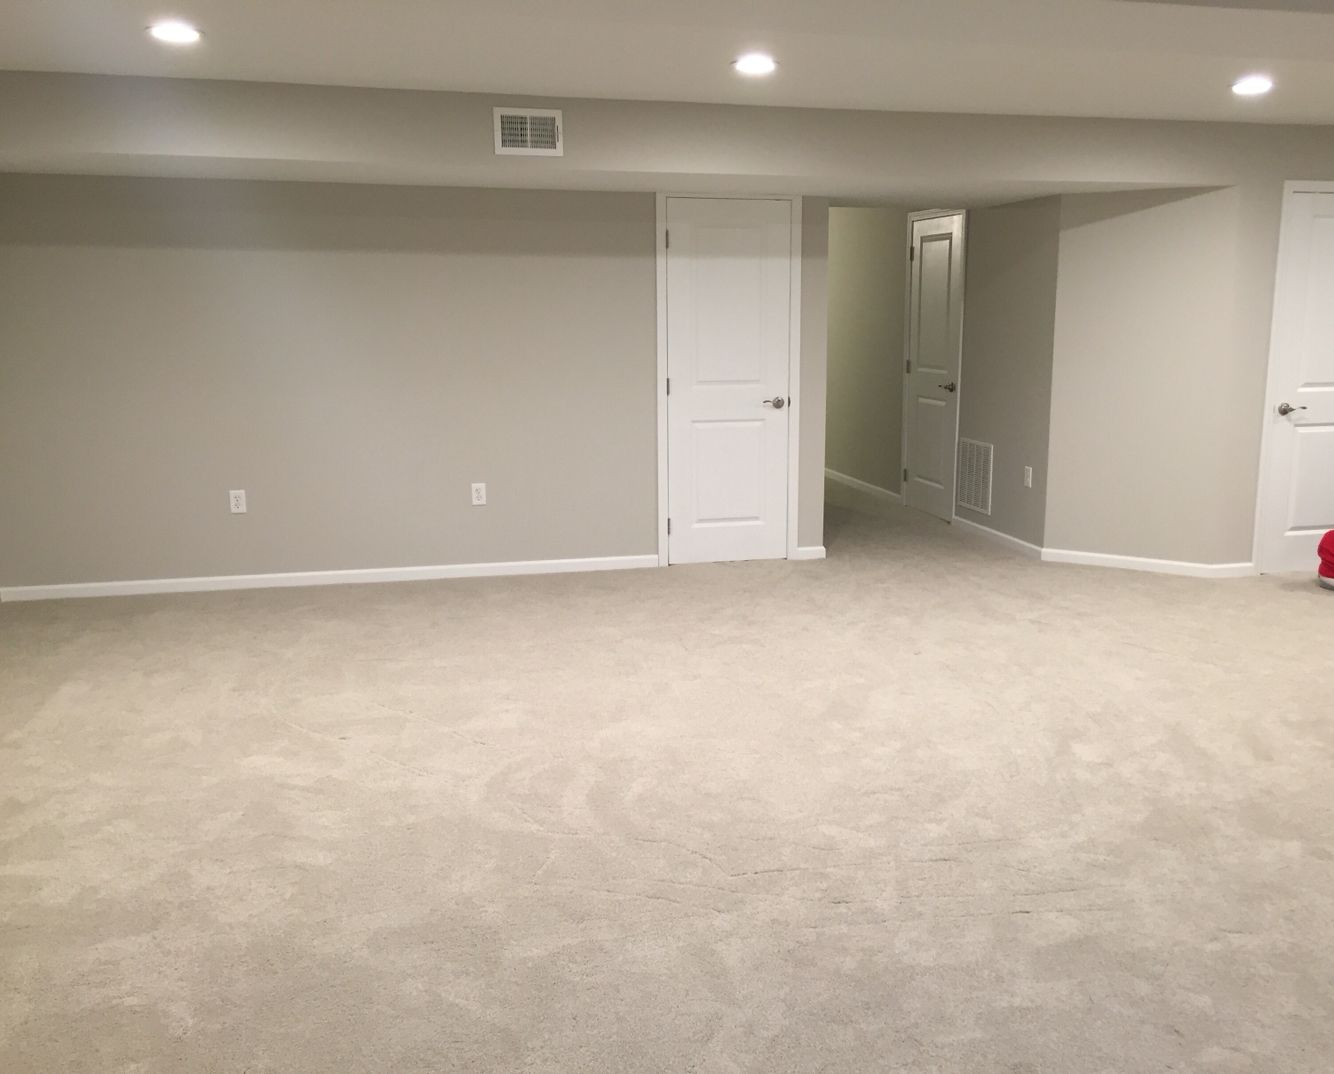 Finished Basement Remodel Project Walls Painted With Agreeable Gray By Sherwin Williams